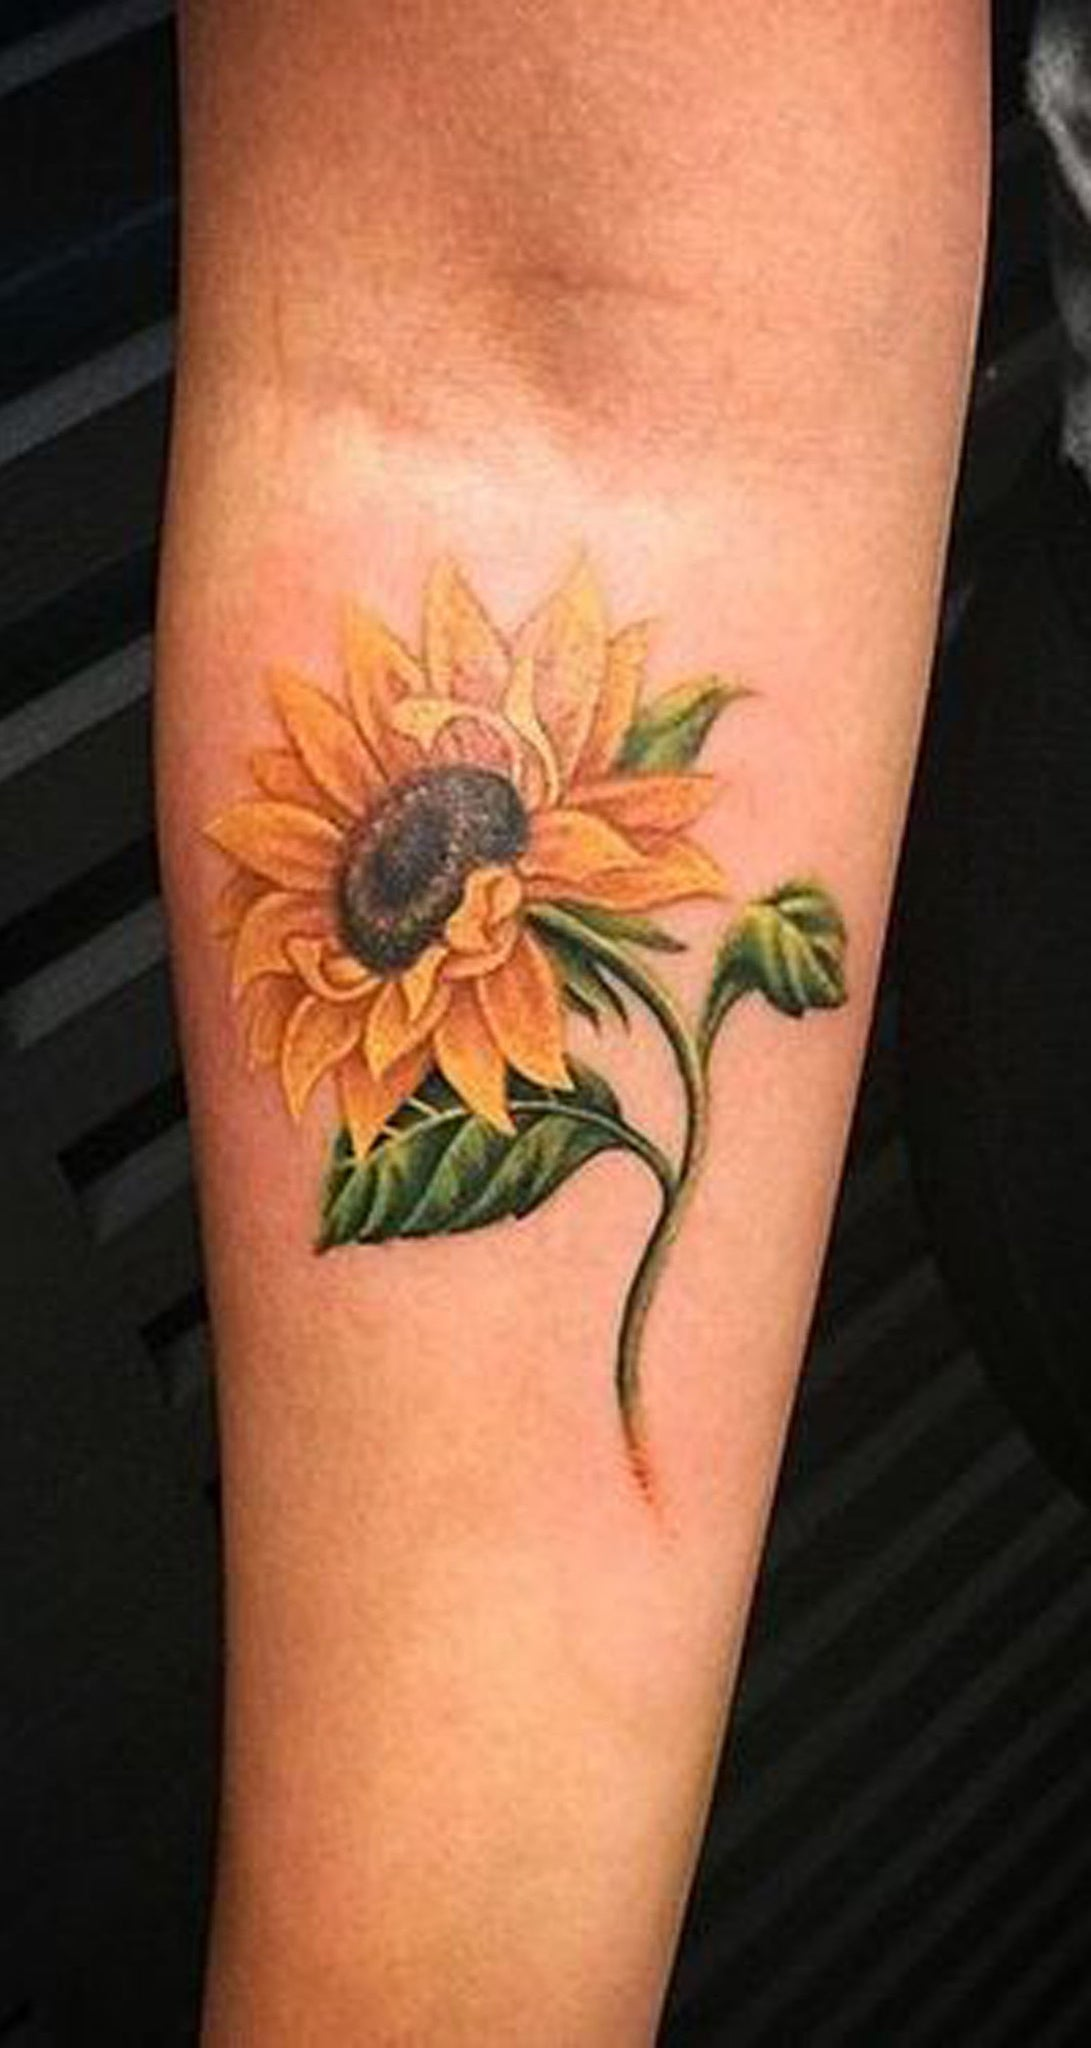 Small Colorful Sunflower Forearm Tattoo ideas for Women - Realistic Flower Arm Tat - Pequeñas ideas coloridas del tatuaje del antebrazo de girasol - www.MyBodiArt.com